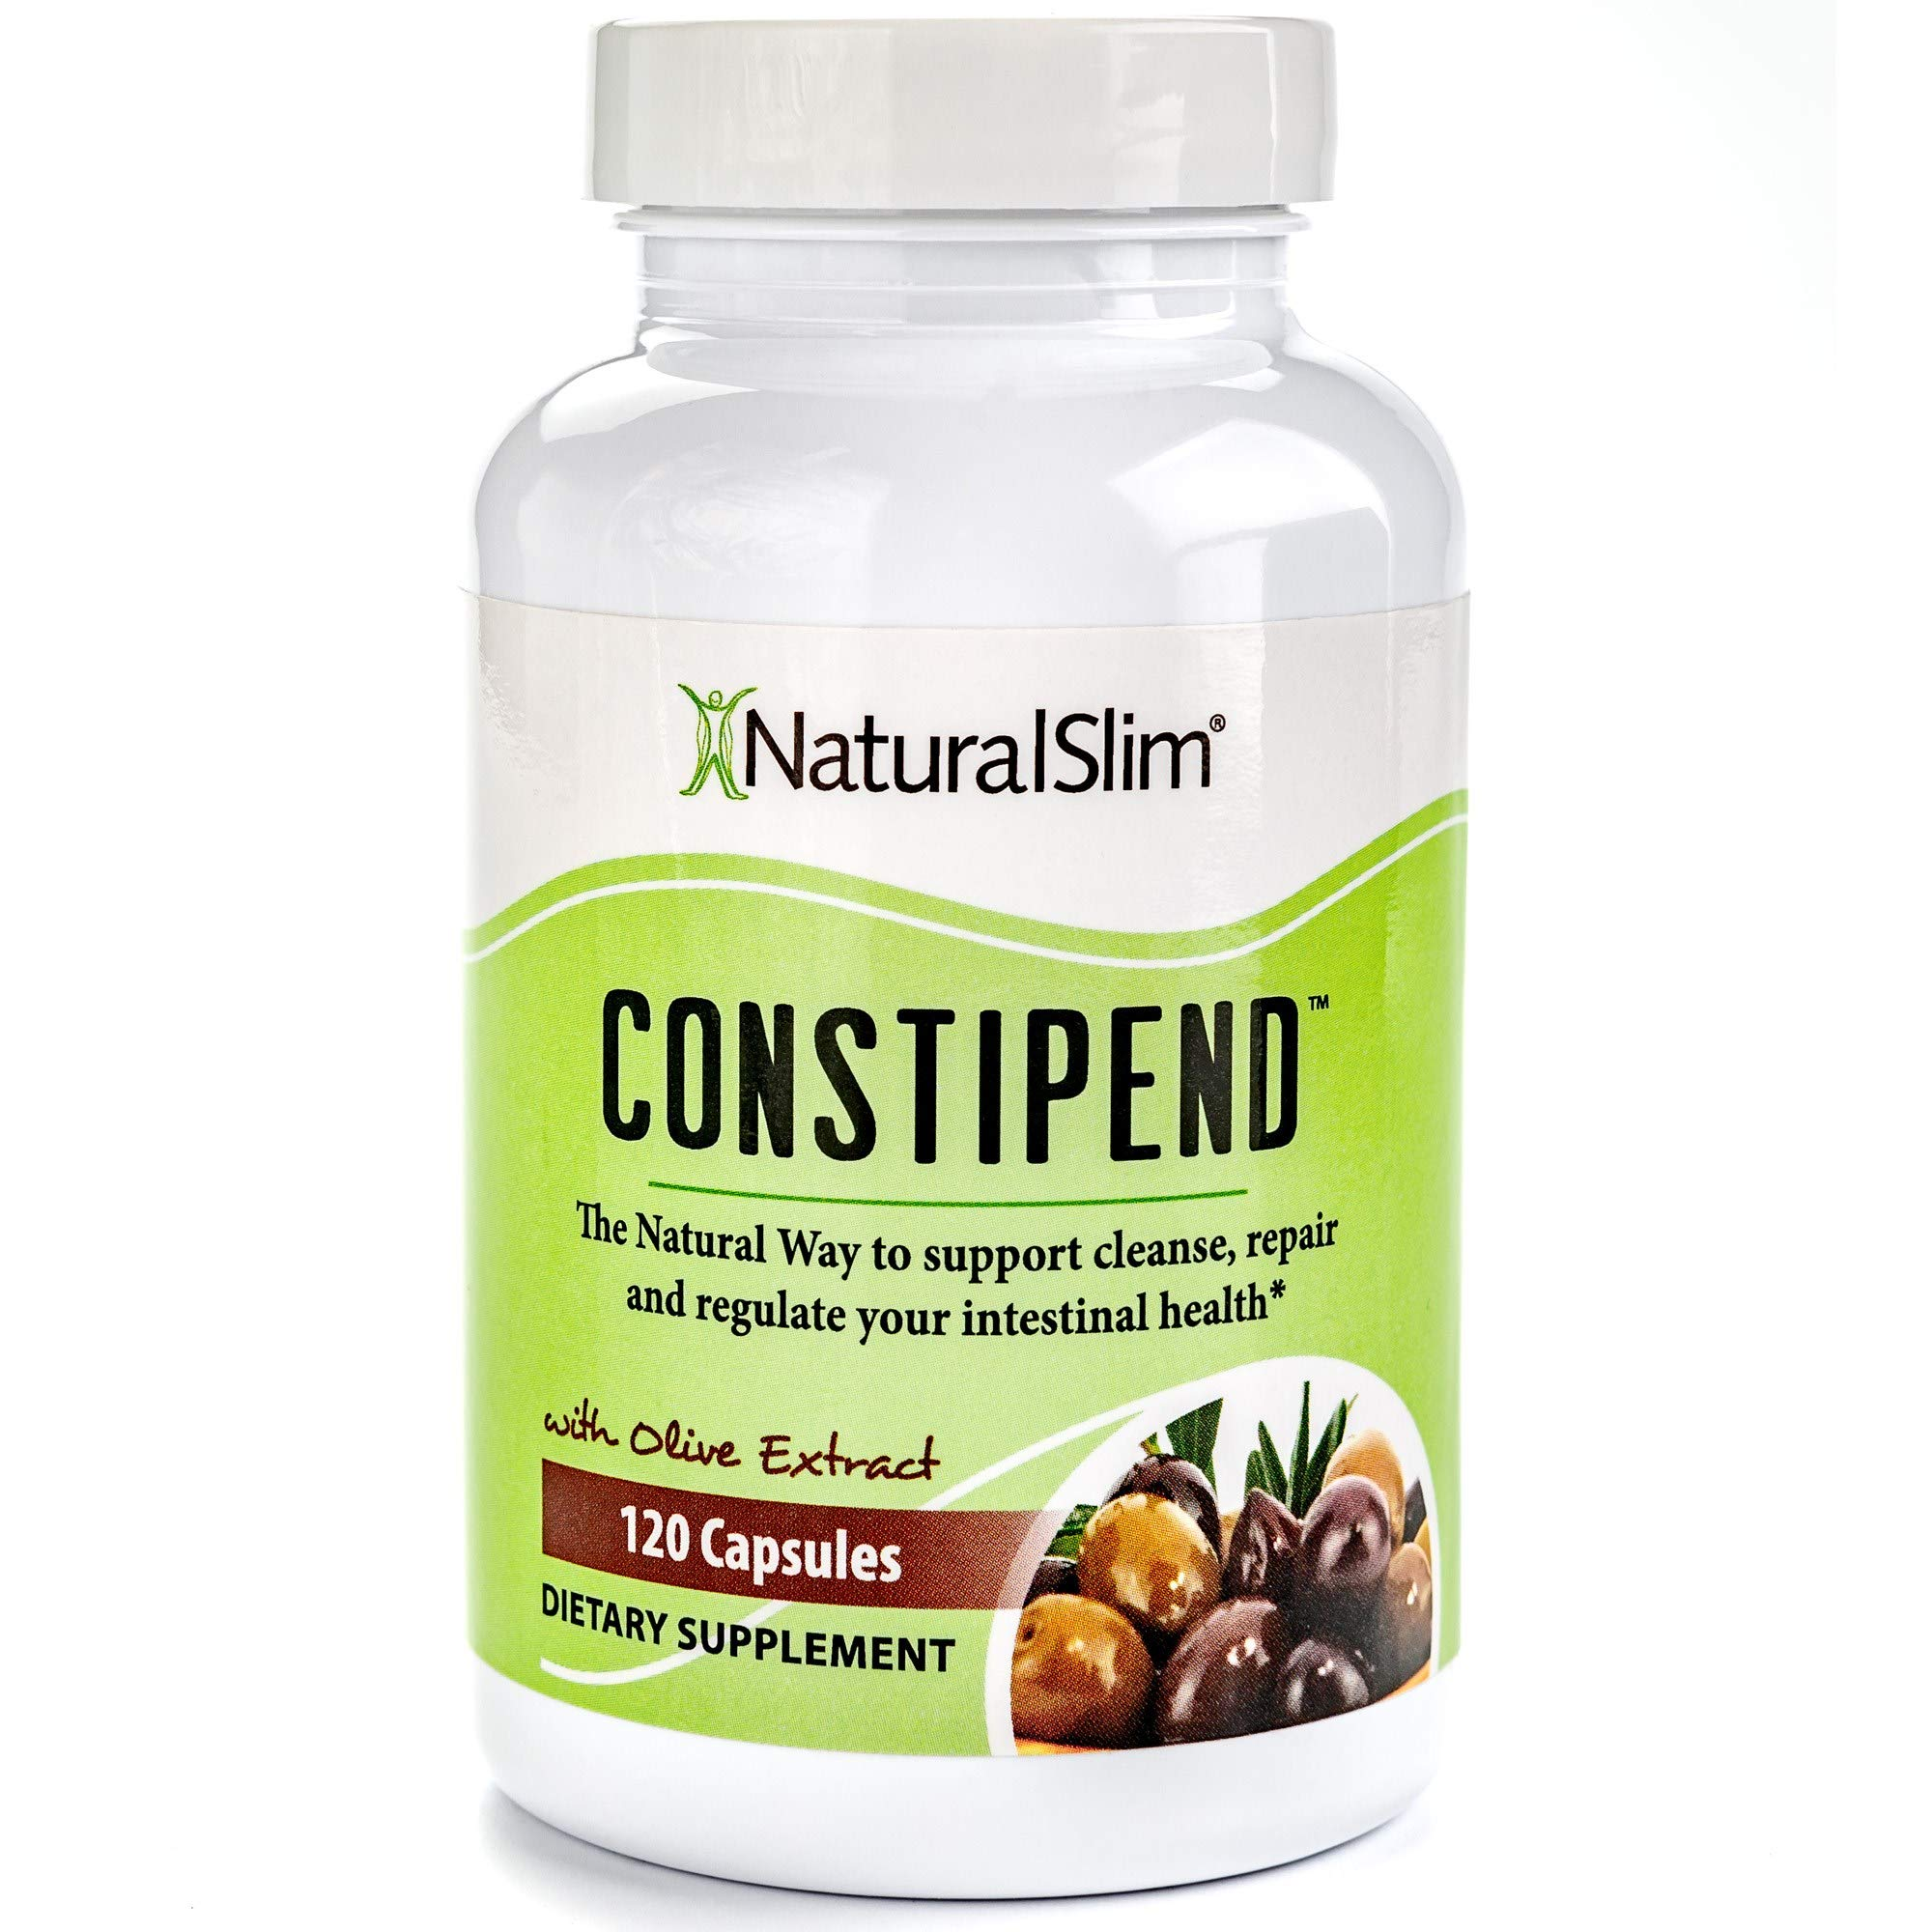 NaturalSlim Constipation Remedy, Formulated by Award Winning Metabolism and Weight Loss Specialist- Natural Colon Cleanse Without Cramping or Side Effects for Fast Relief and a Flatter Tummy by NaturalSlim